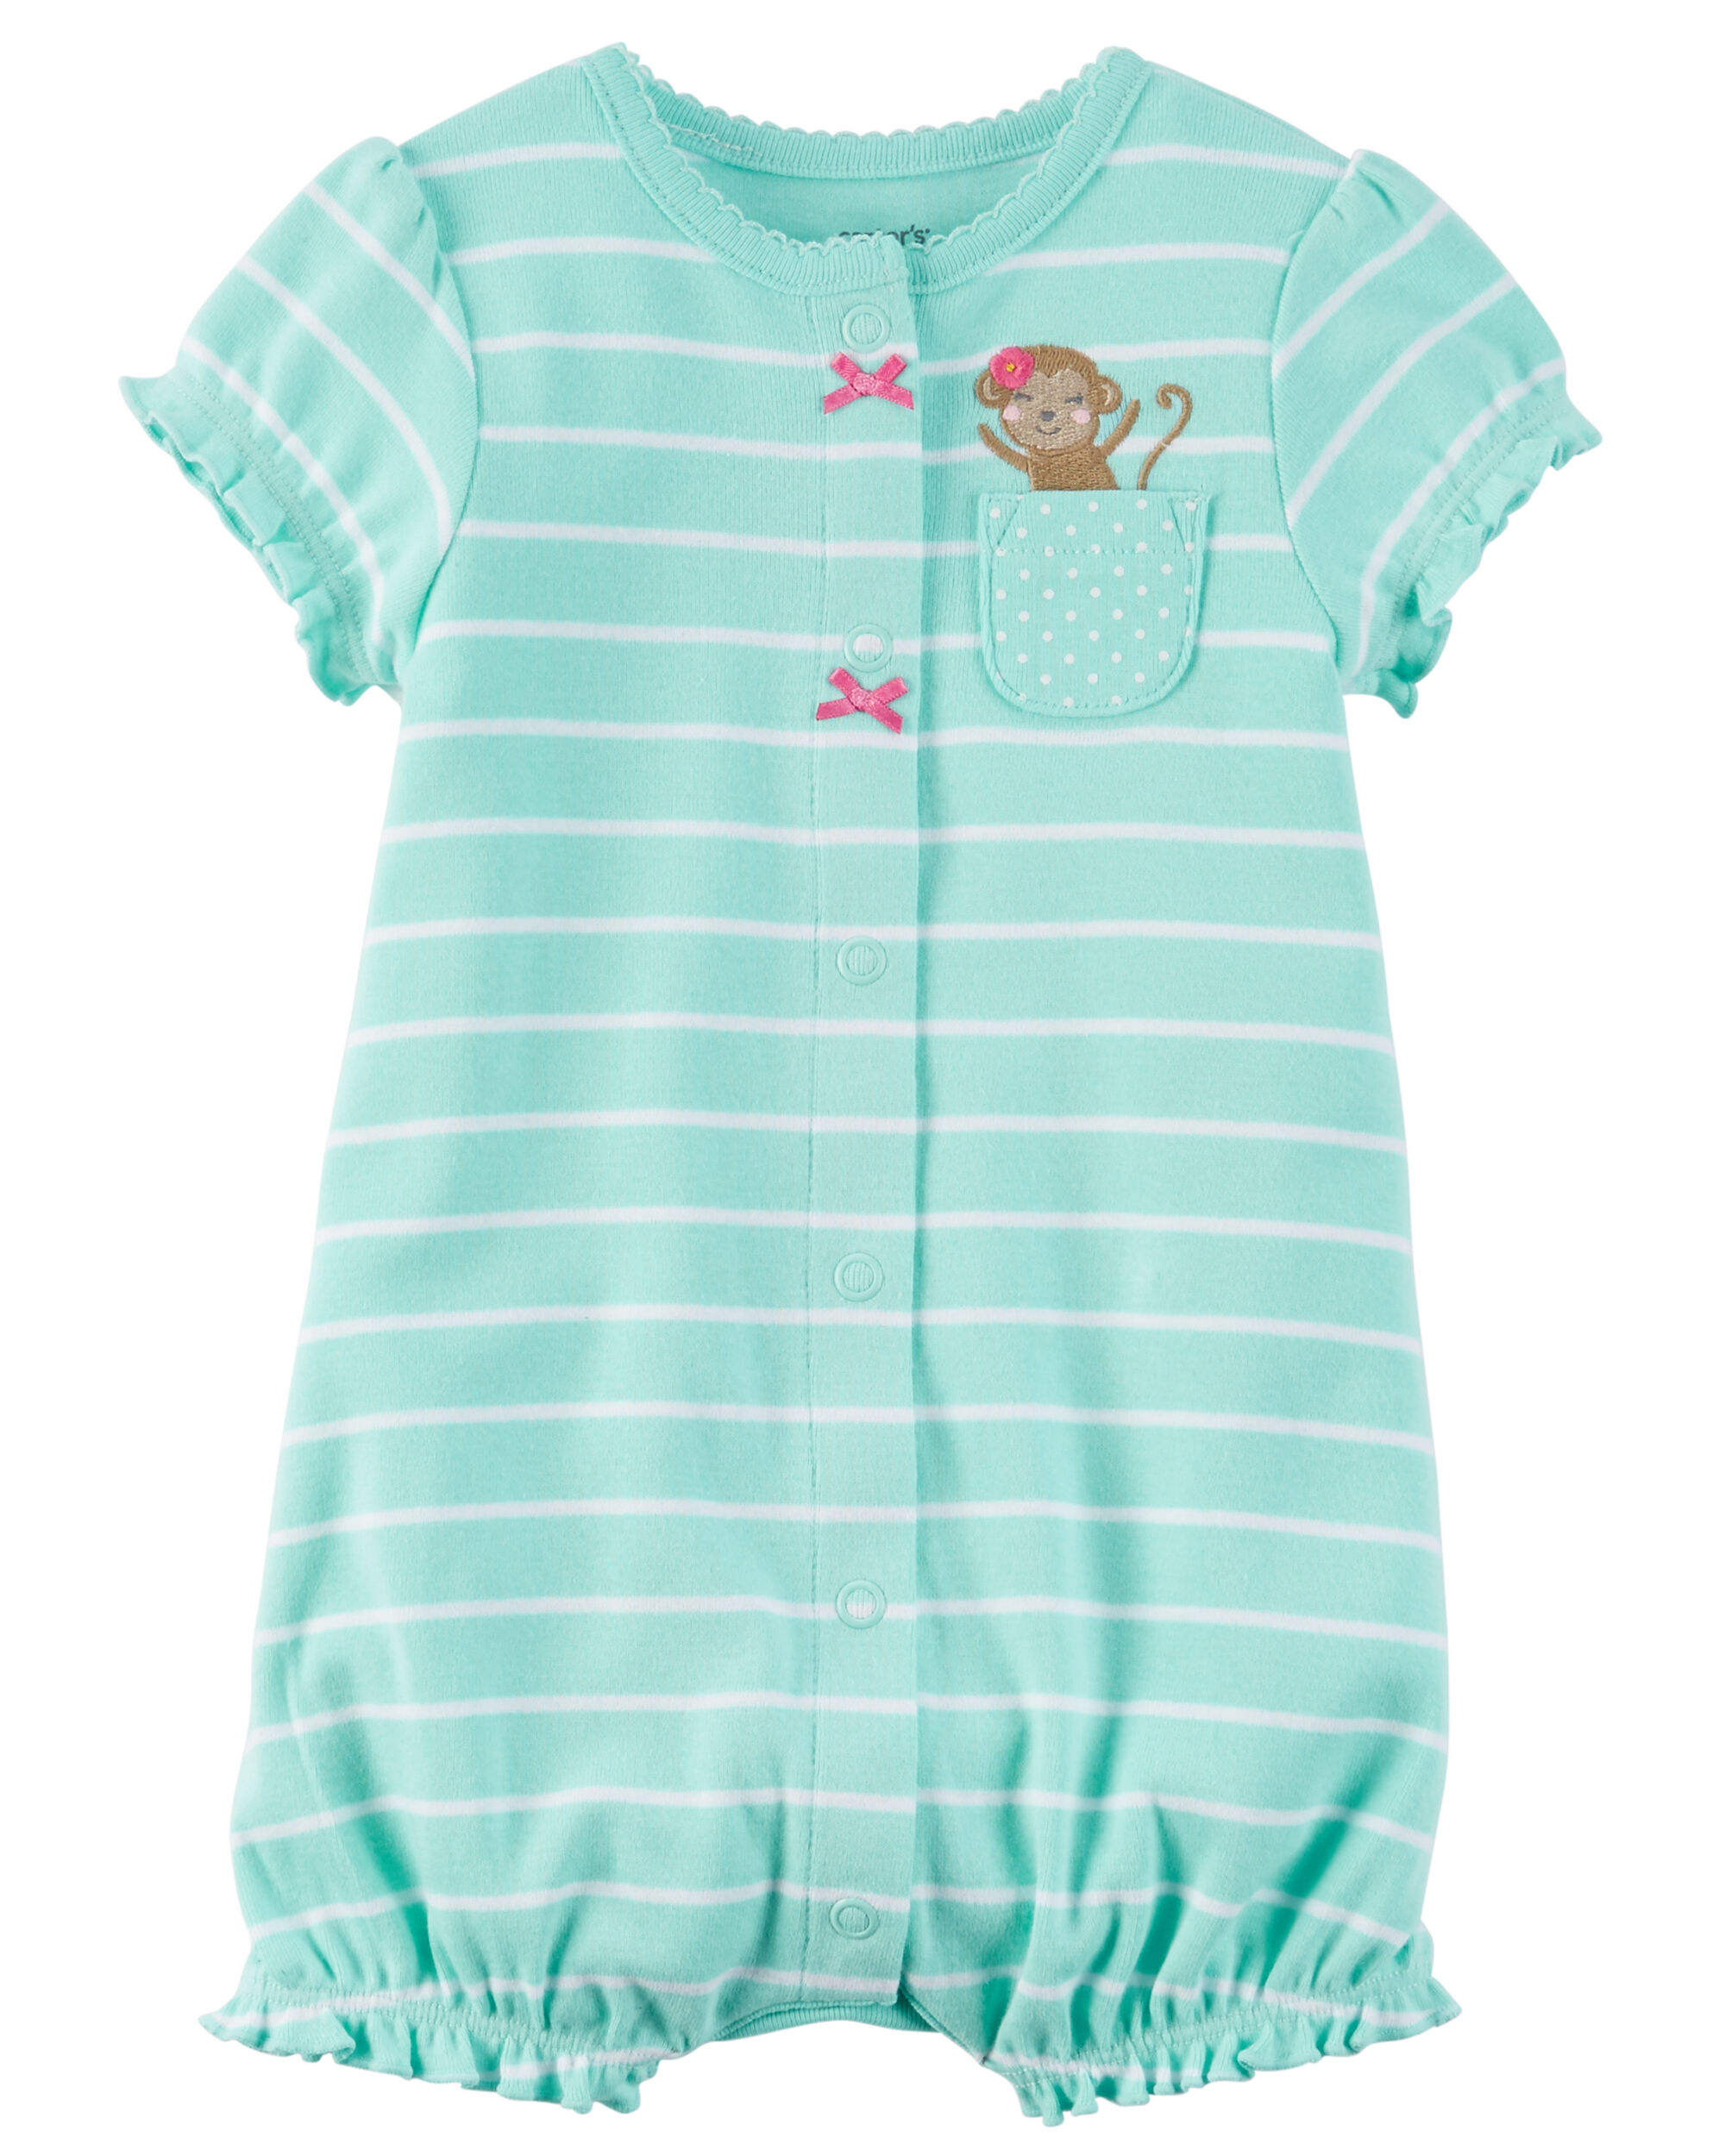 Carters Cotton Flutter Sleeves Snap-Up Romper